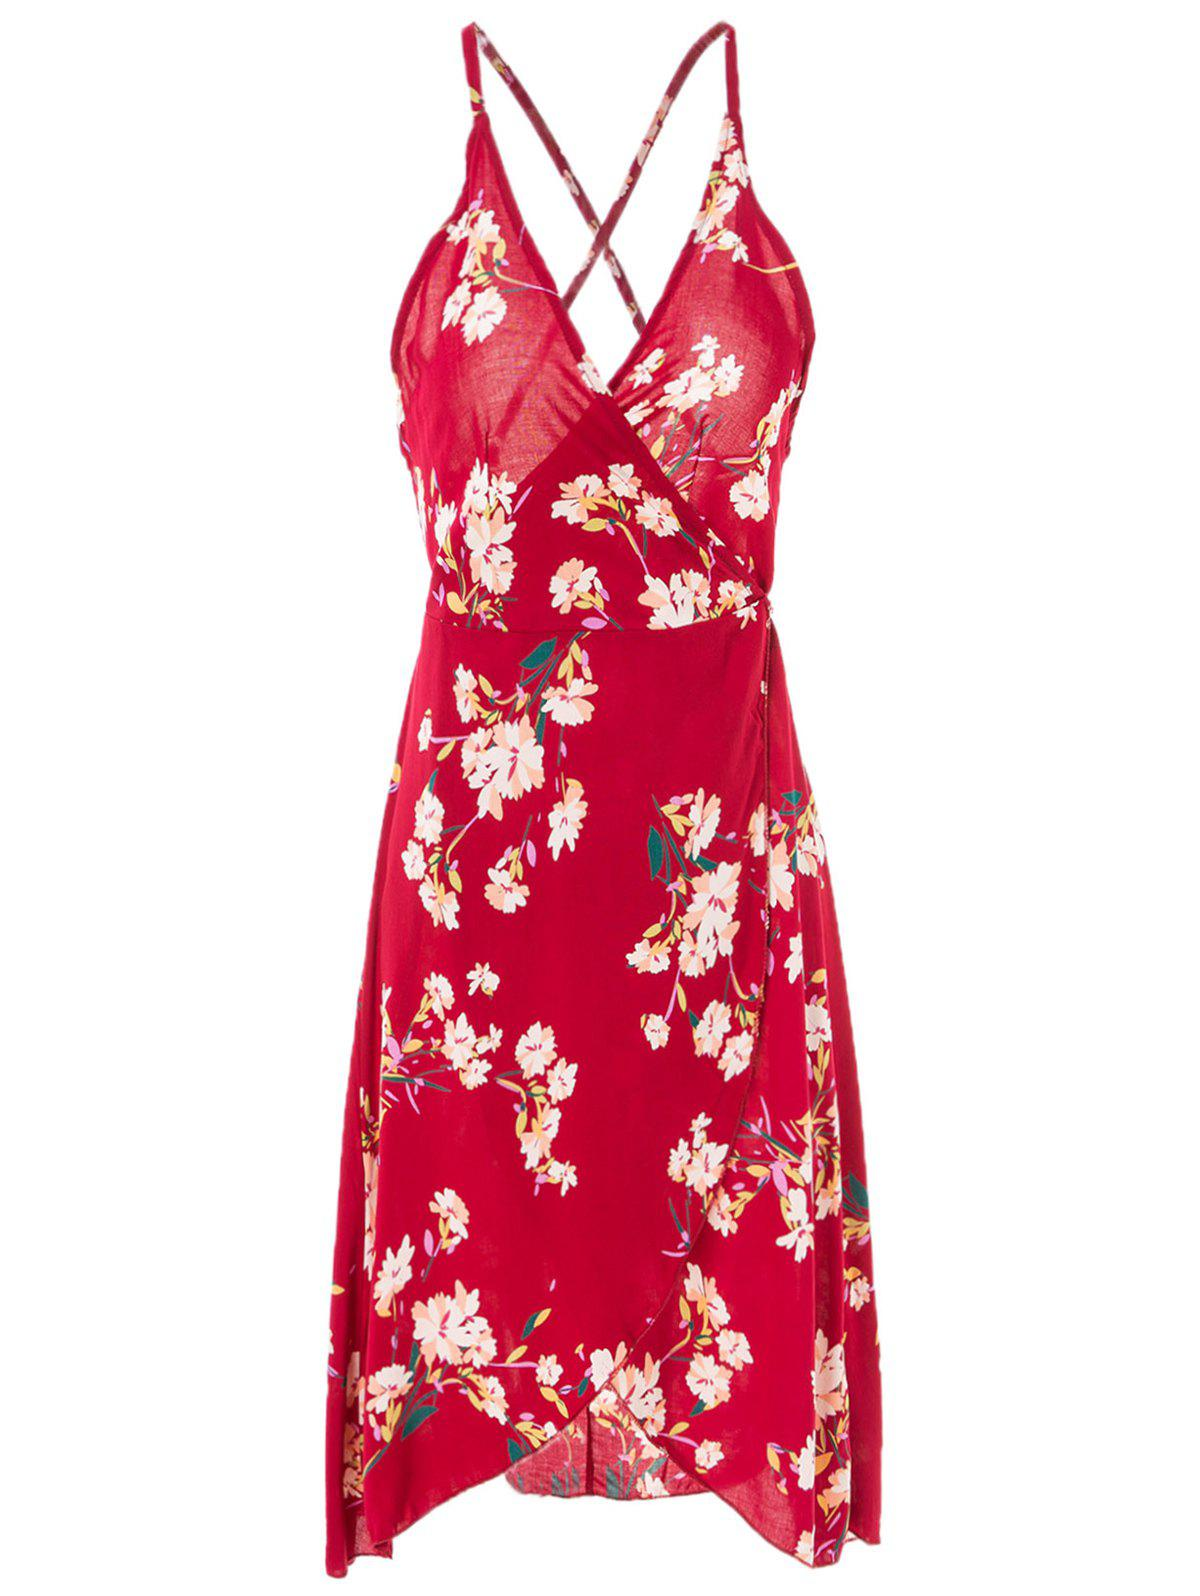 Sexy Women's Spaghetti Strap Floral Print Cross Back Dress - WINE RED S